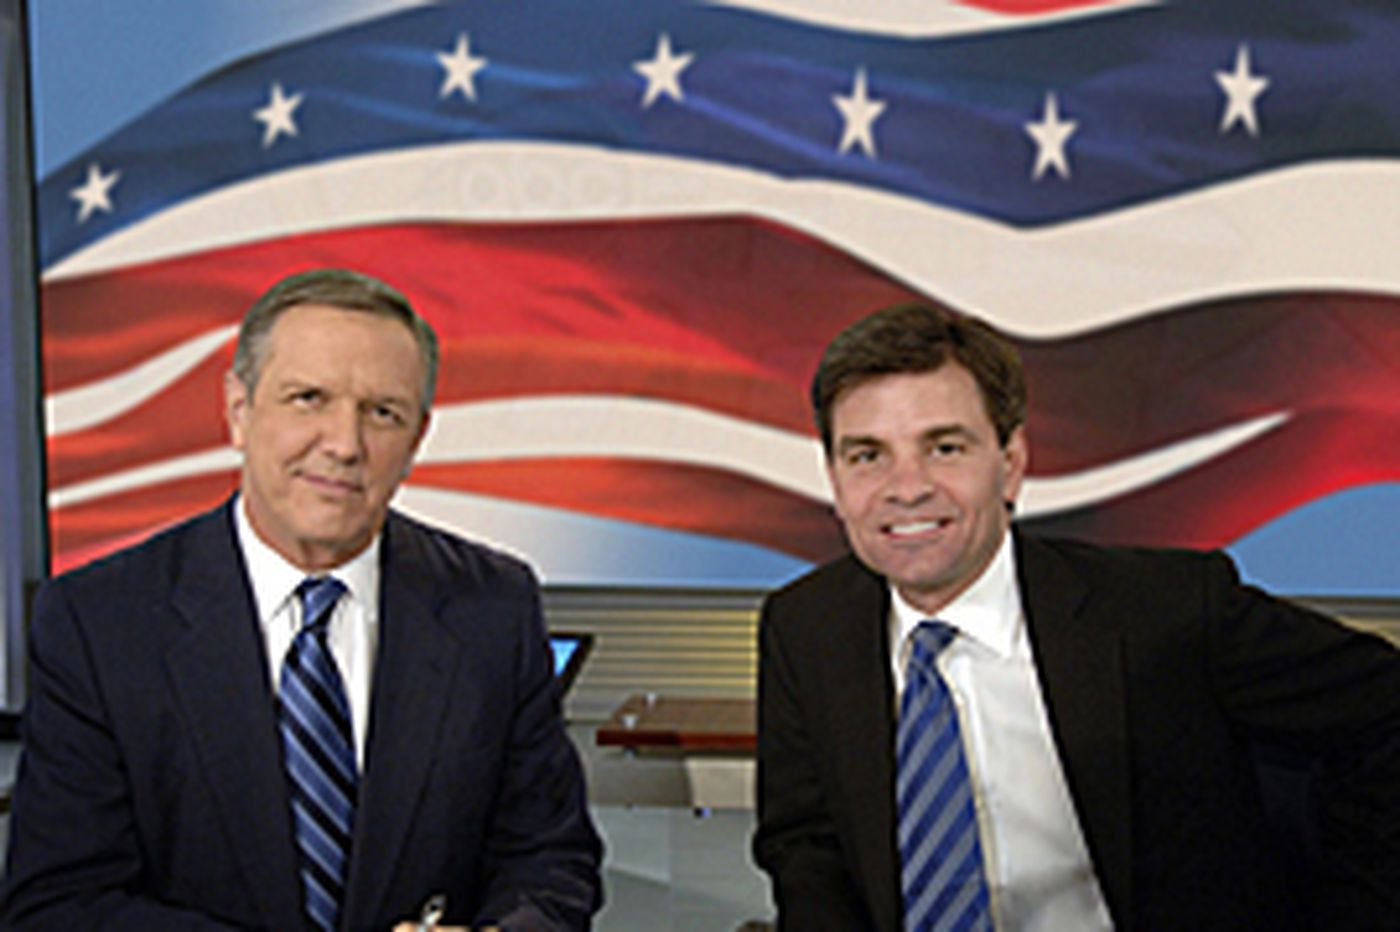 ABC gets an earful after debate